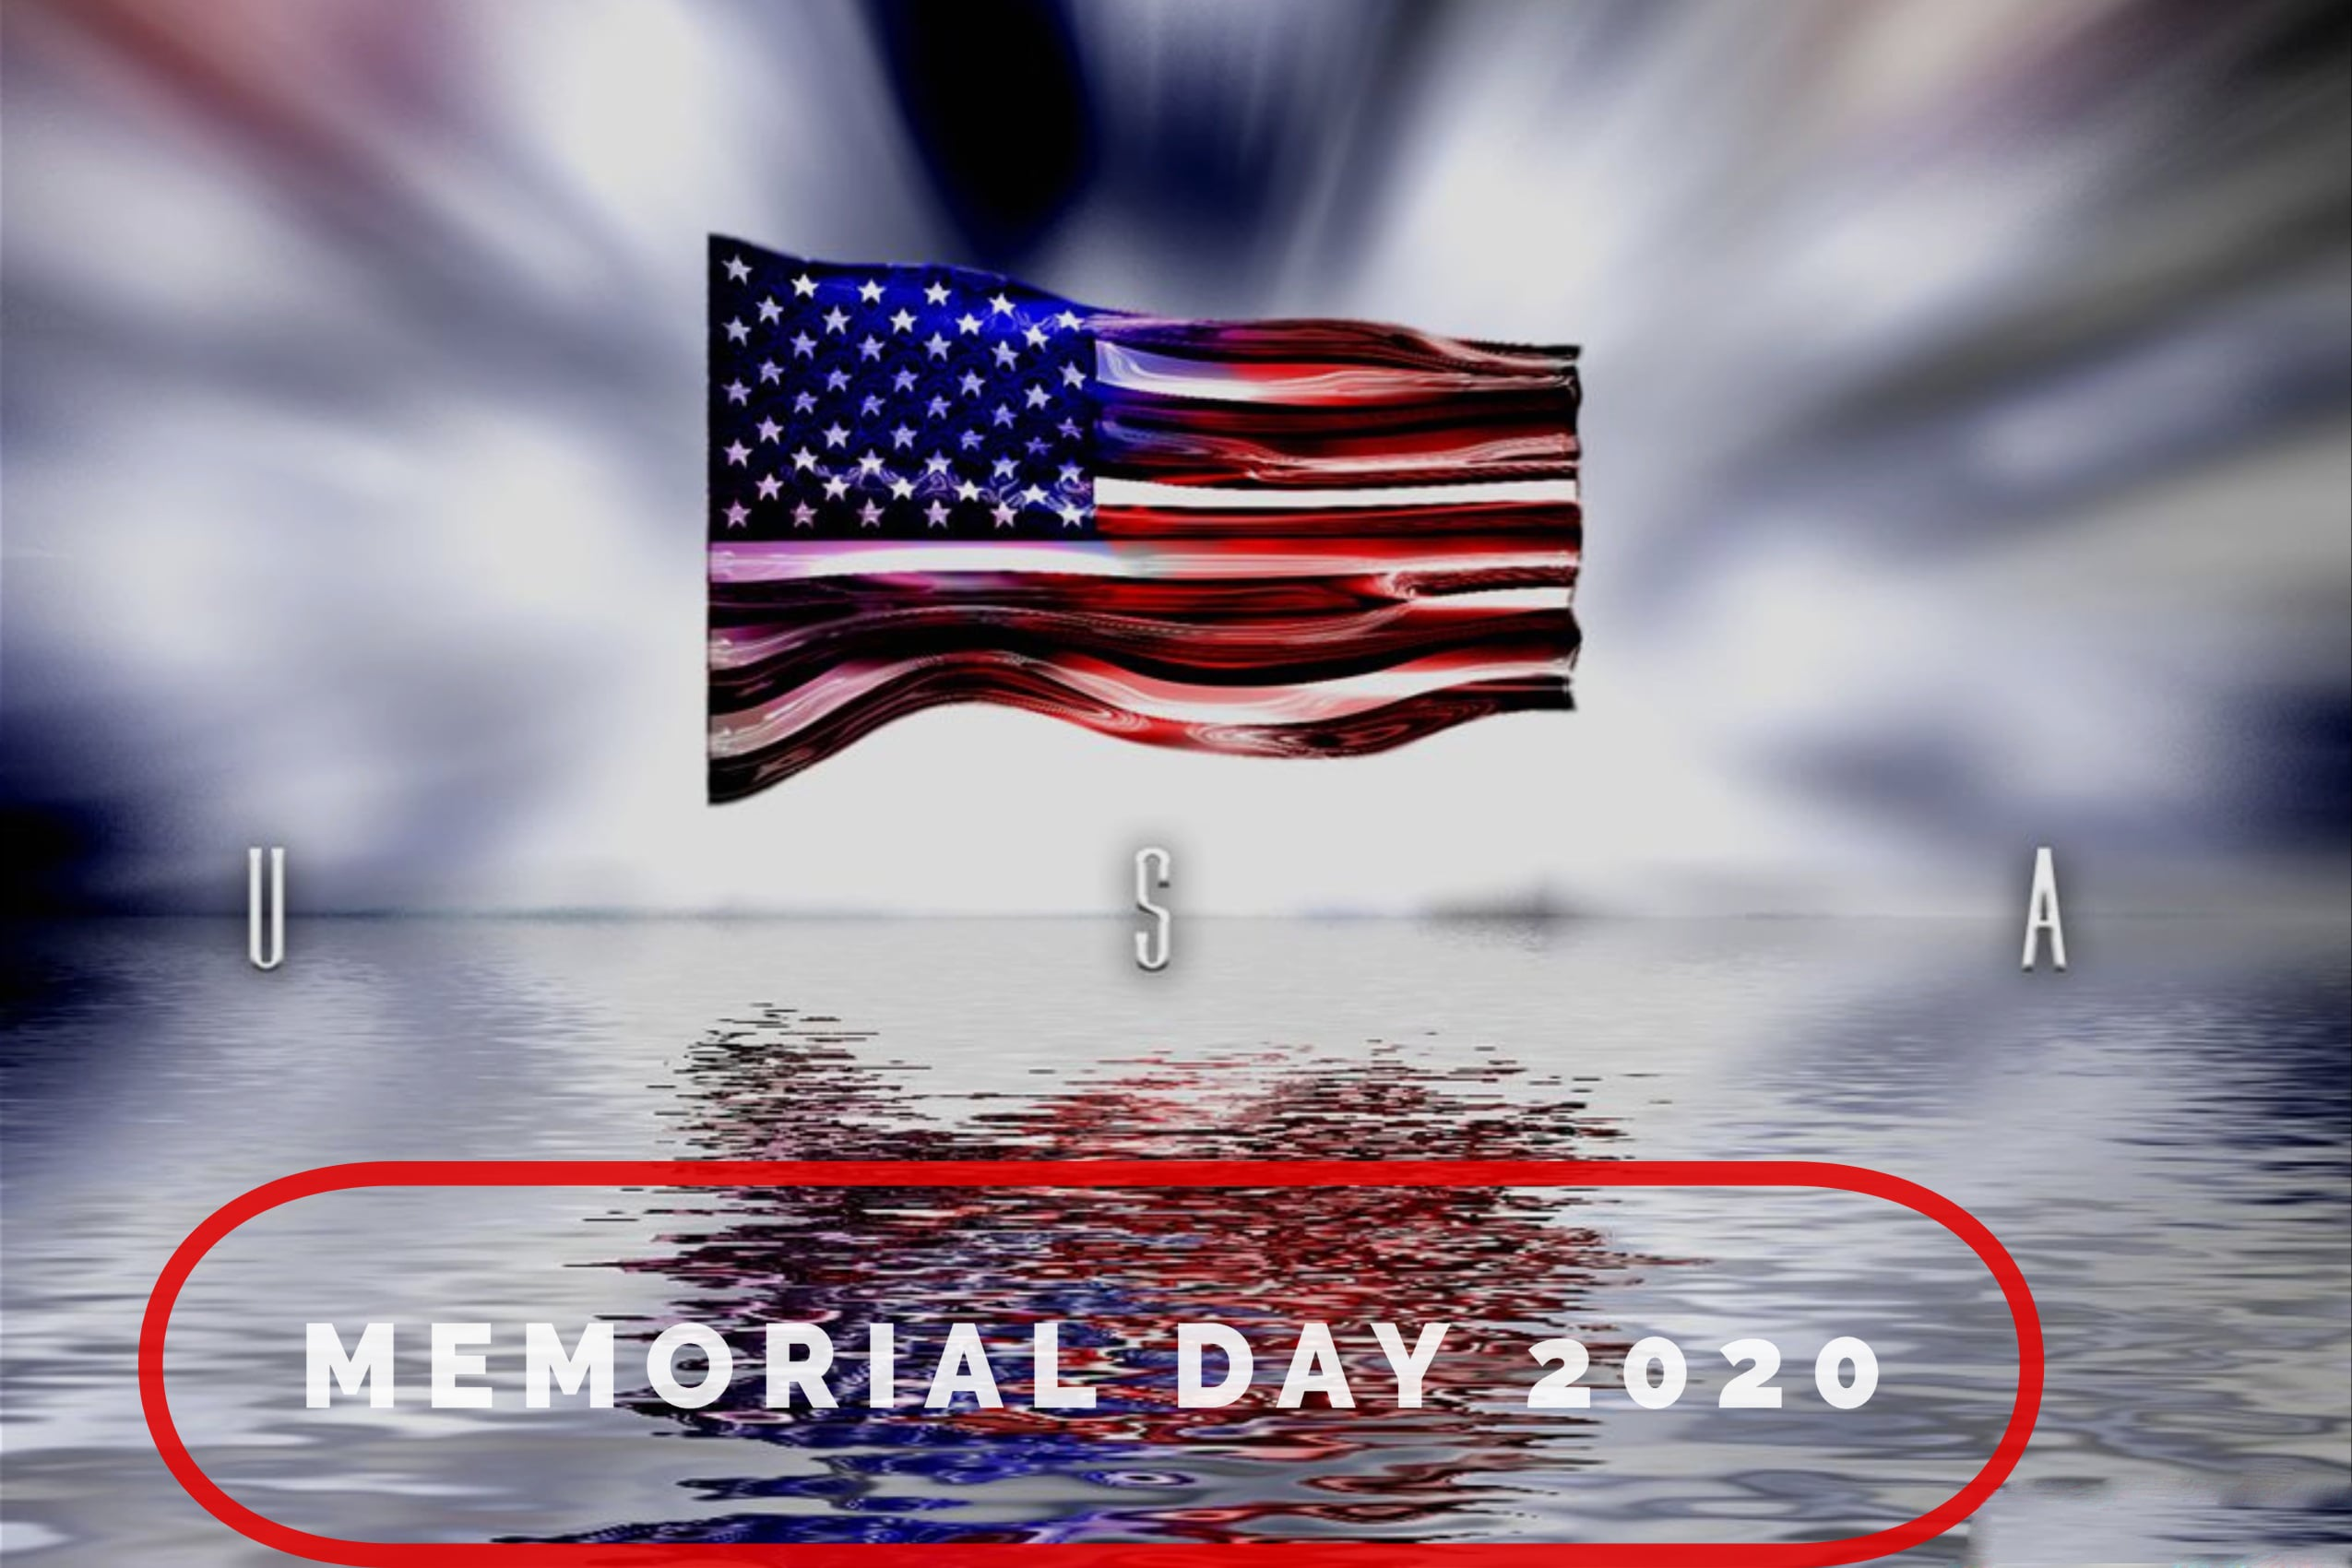 Memorial Day Wallpaper 2020